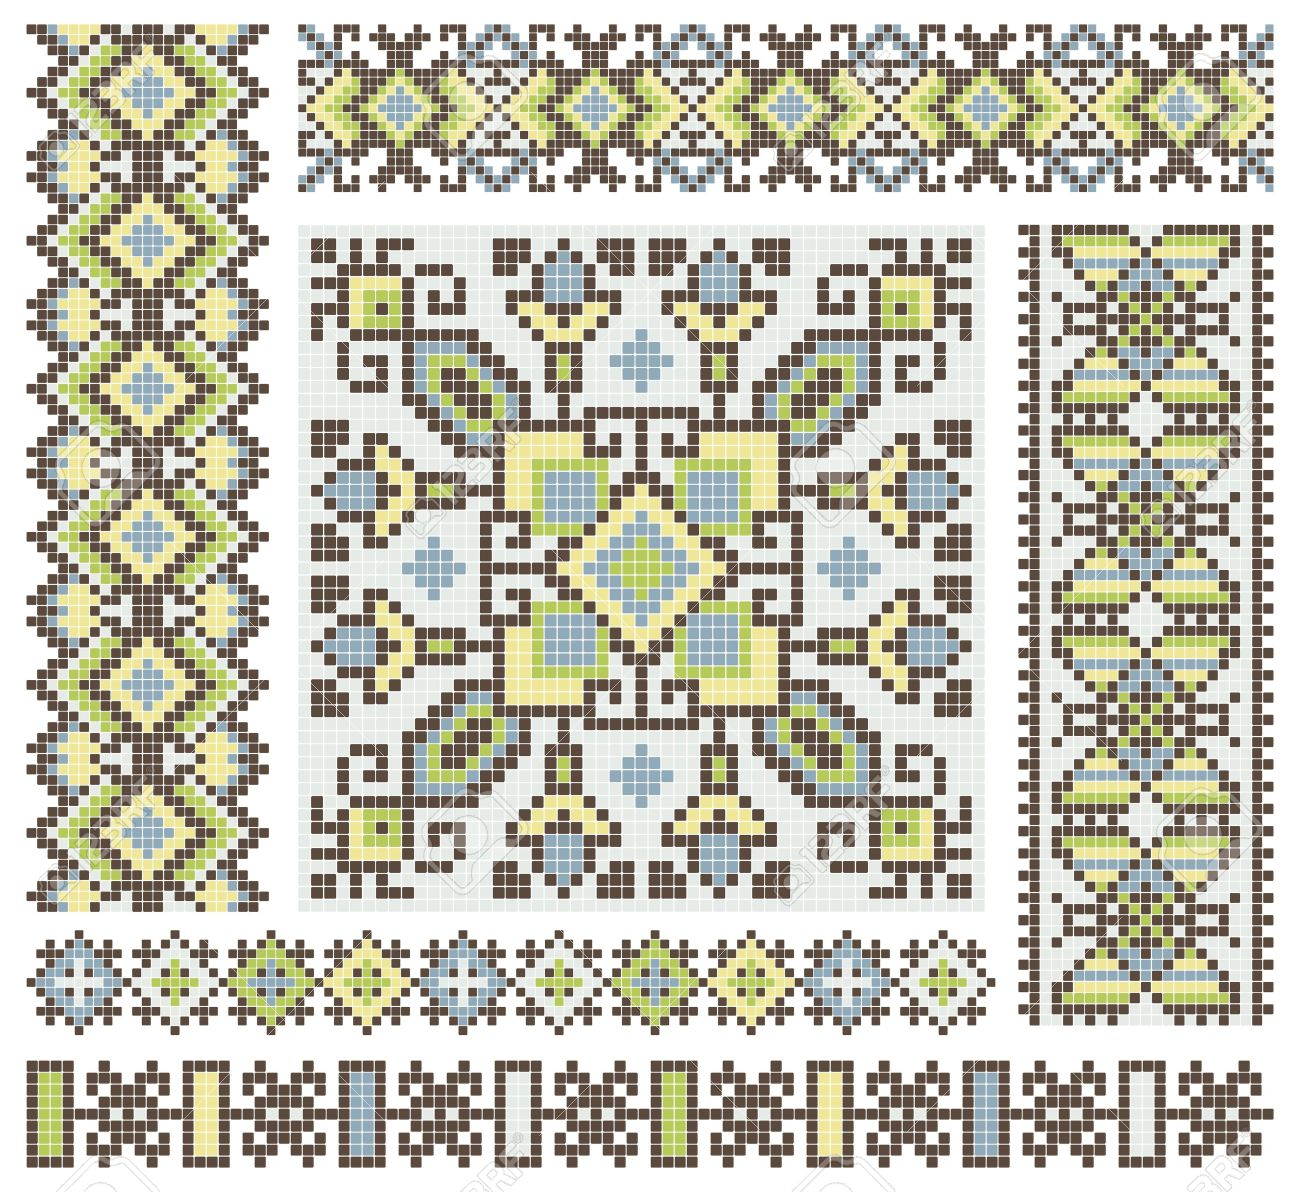 embroidered good like handmade cross-stitch ethnic Ukraine pattern design Stock Vector - 13762454